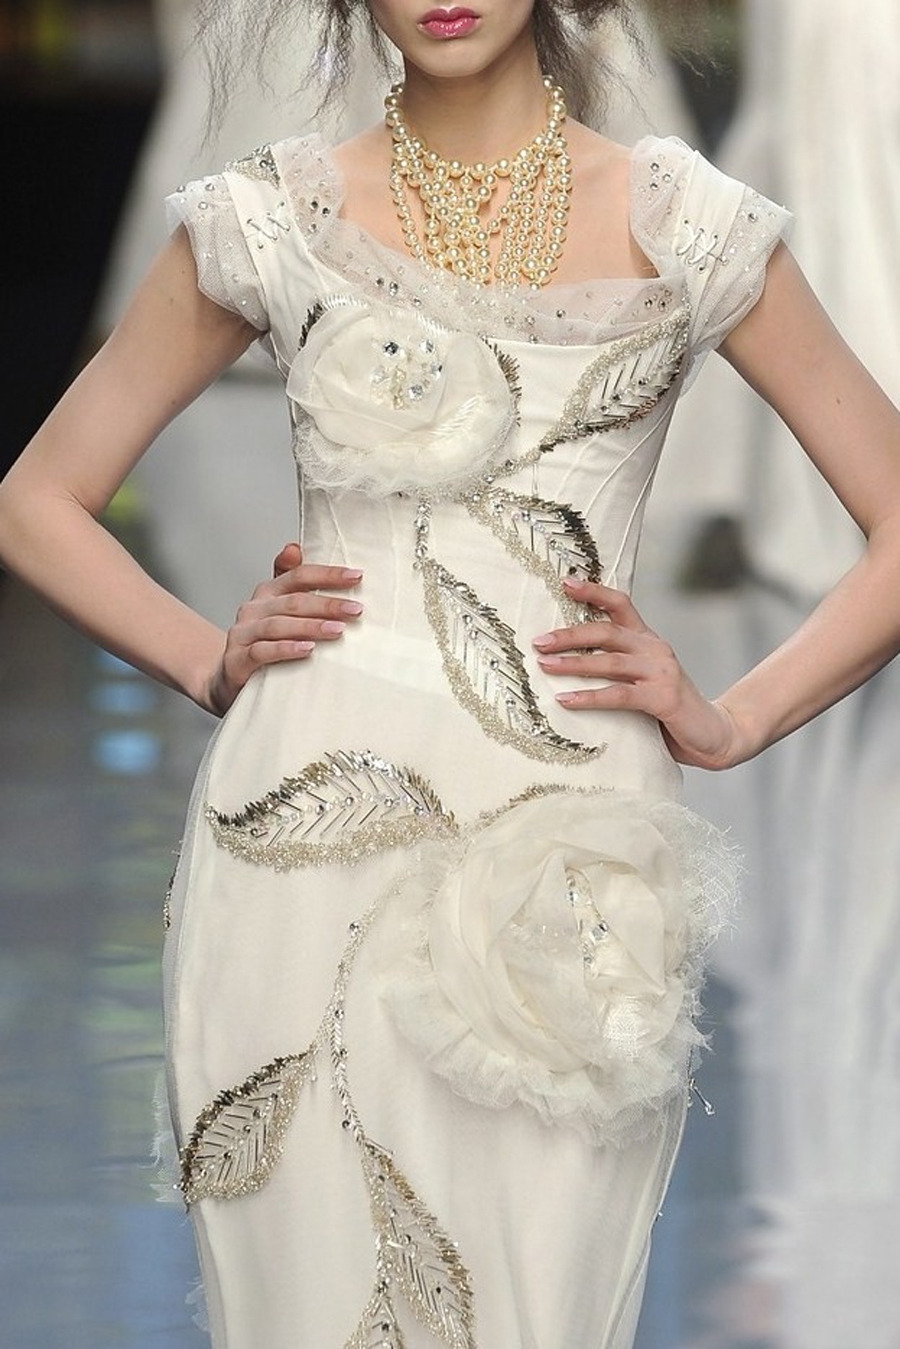 seaborder:  John Galliano for Christian Dior Spring Summer 2009 Haute Couture